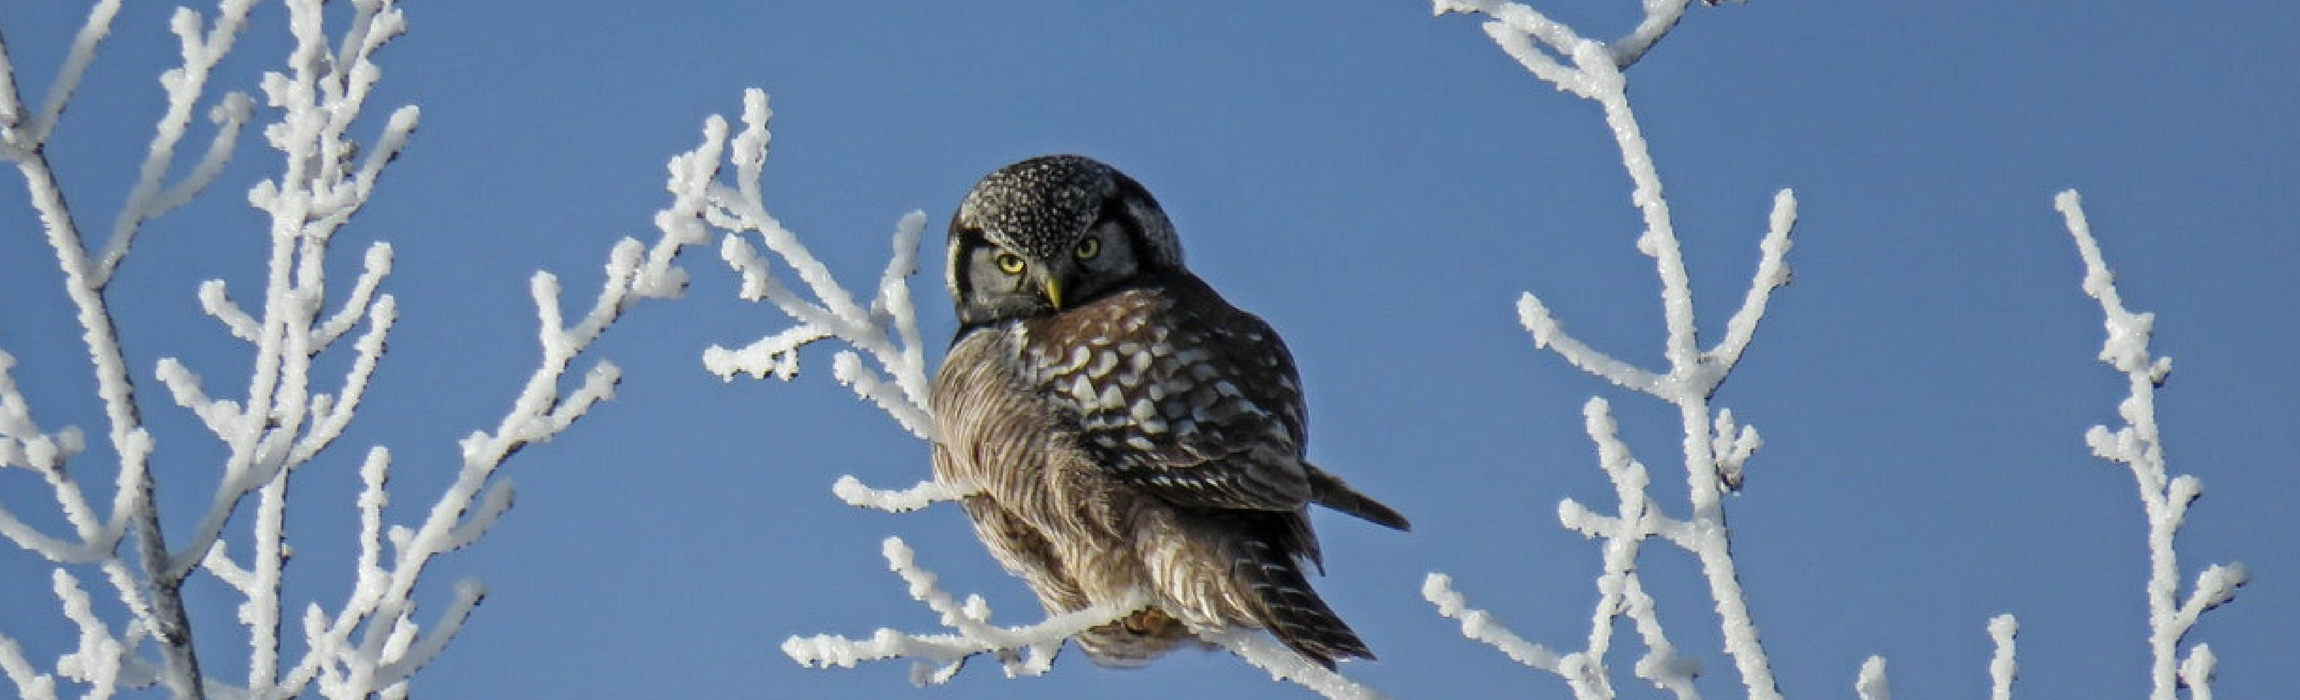 Wise owl perched on a snowy branch